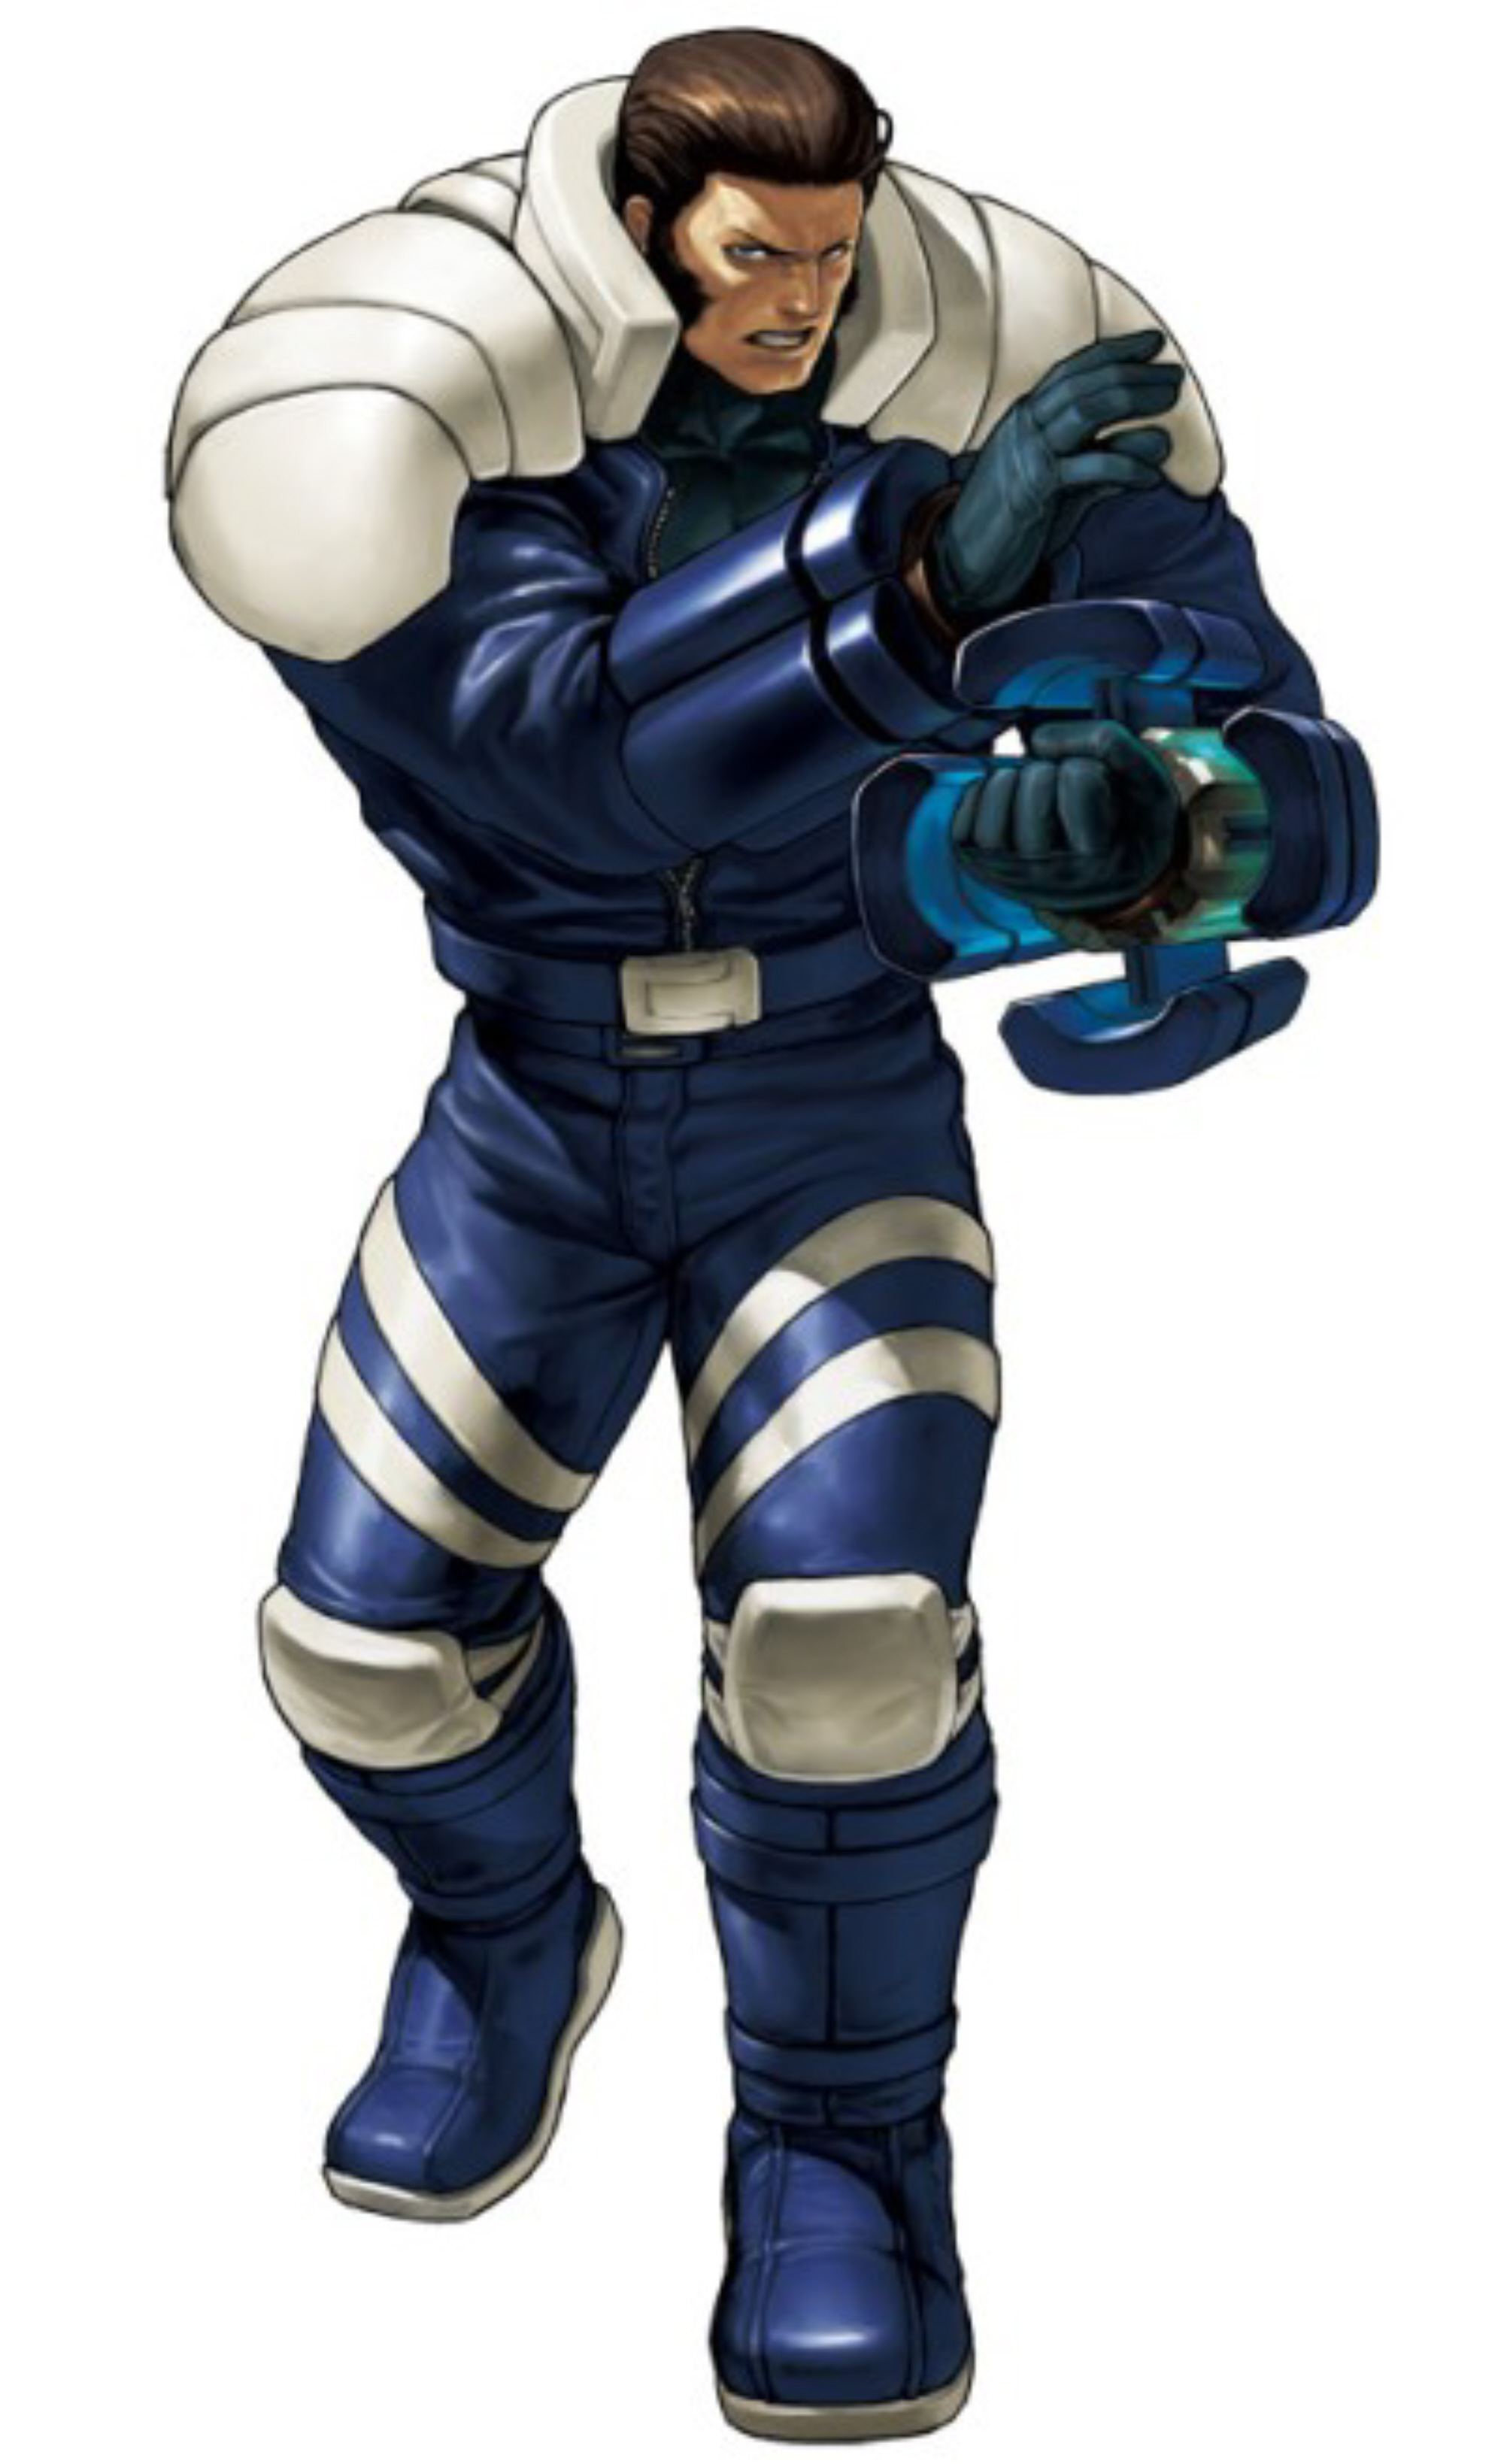 King of fighters xiii maxima character artwork - King of fighters characters pictures ...